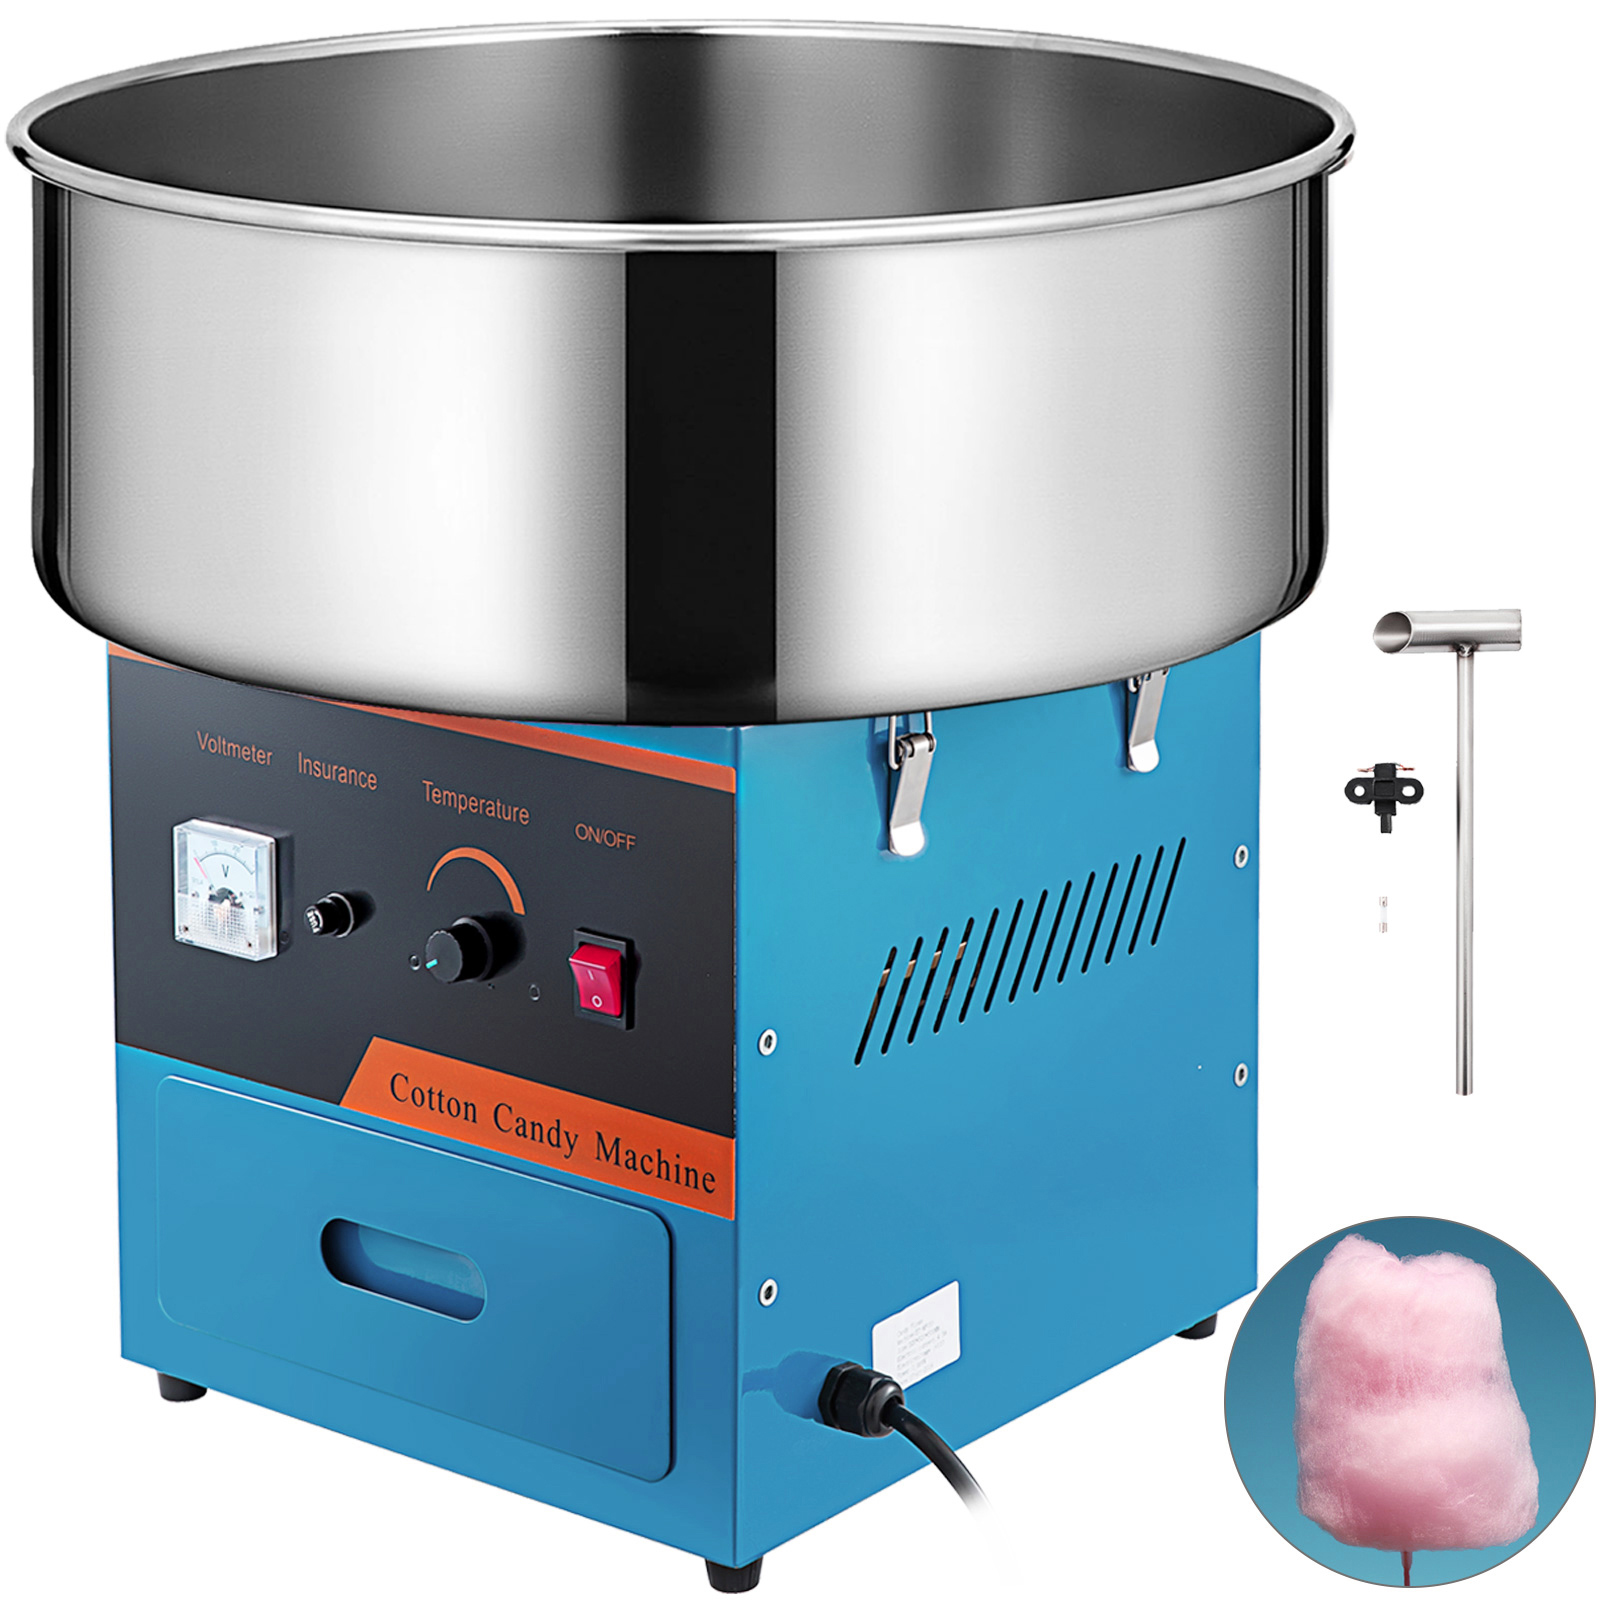 Details about  /VEVOR Blue Electric Commercial Cotton Candy Machine StandFloss Maker 1030W